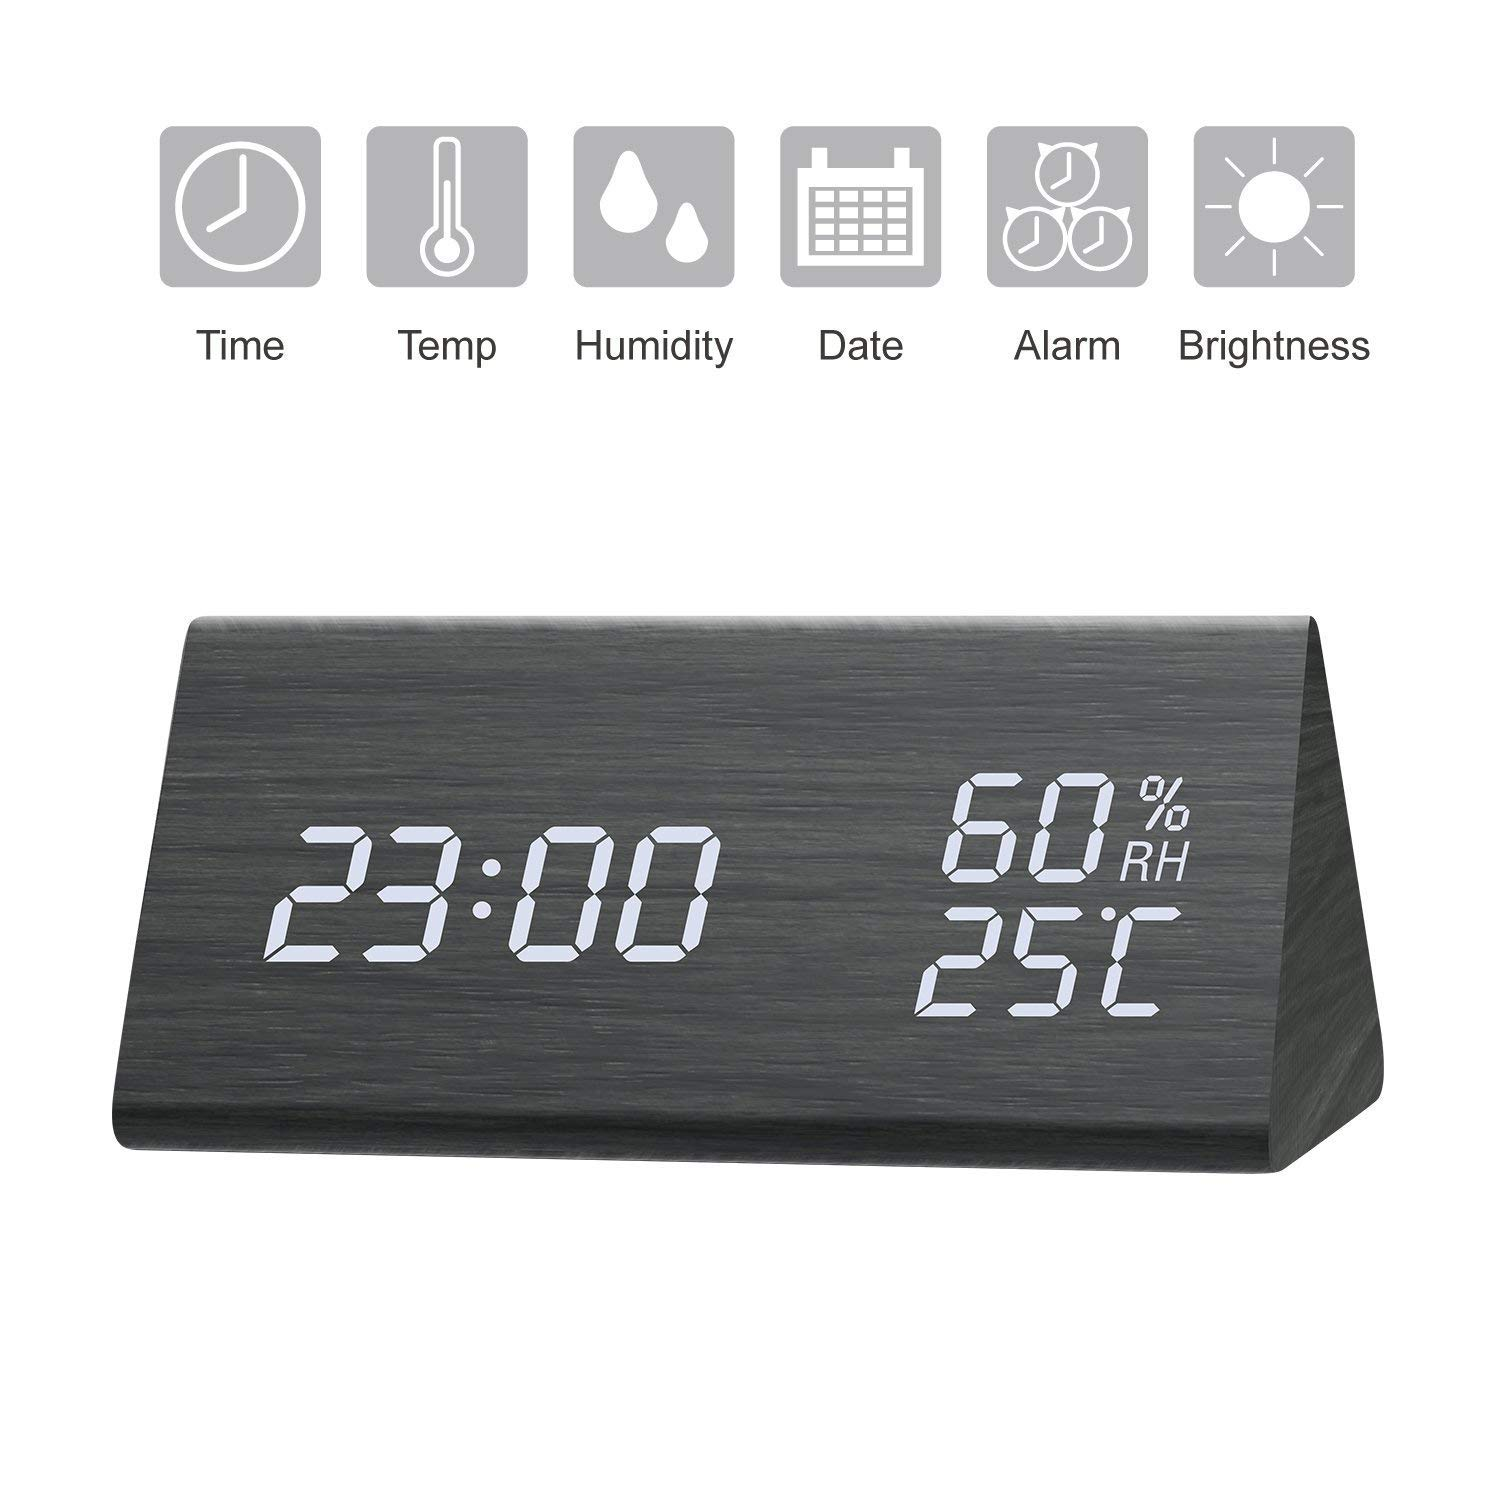 GEEKERS Digital Alarm Clock, 6.5'' Large Display Alarm Clock with Dual USB Charger Port, Dimmer and Big Snooze, LED Clock with Mirror Surface, Suitable for Bedroom, Home, Office Décor Office Décor